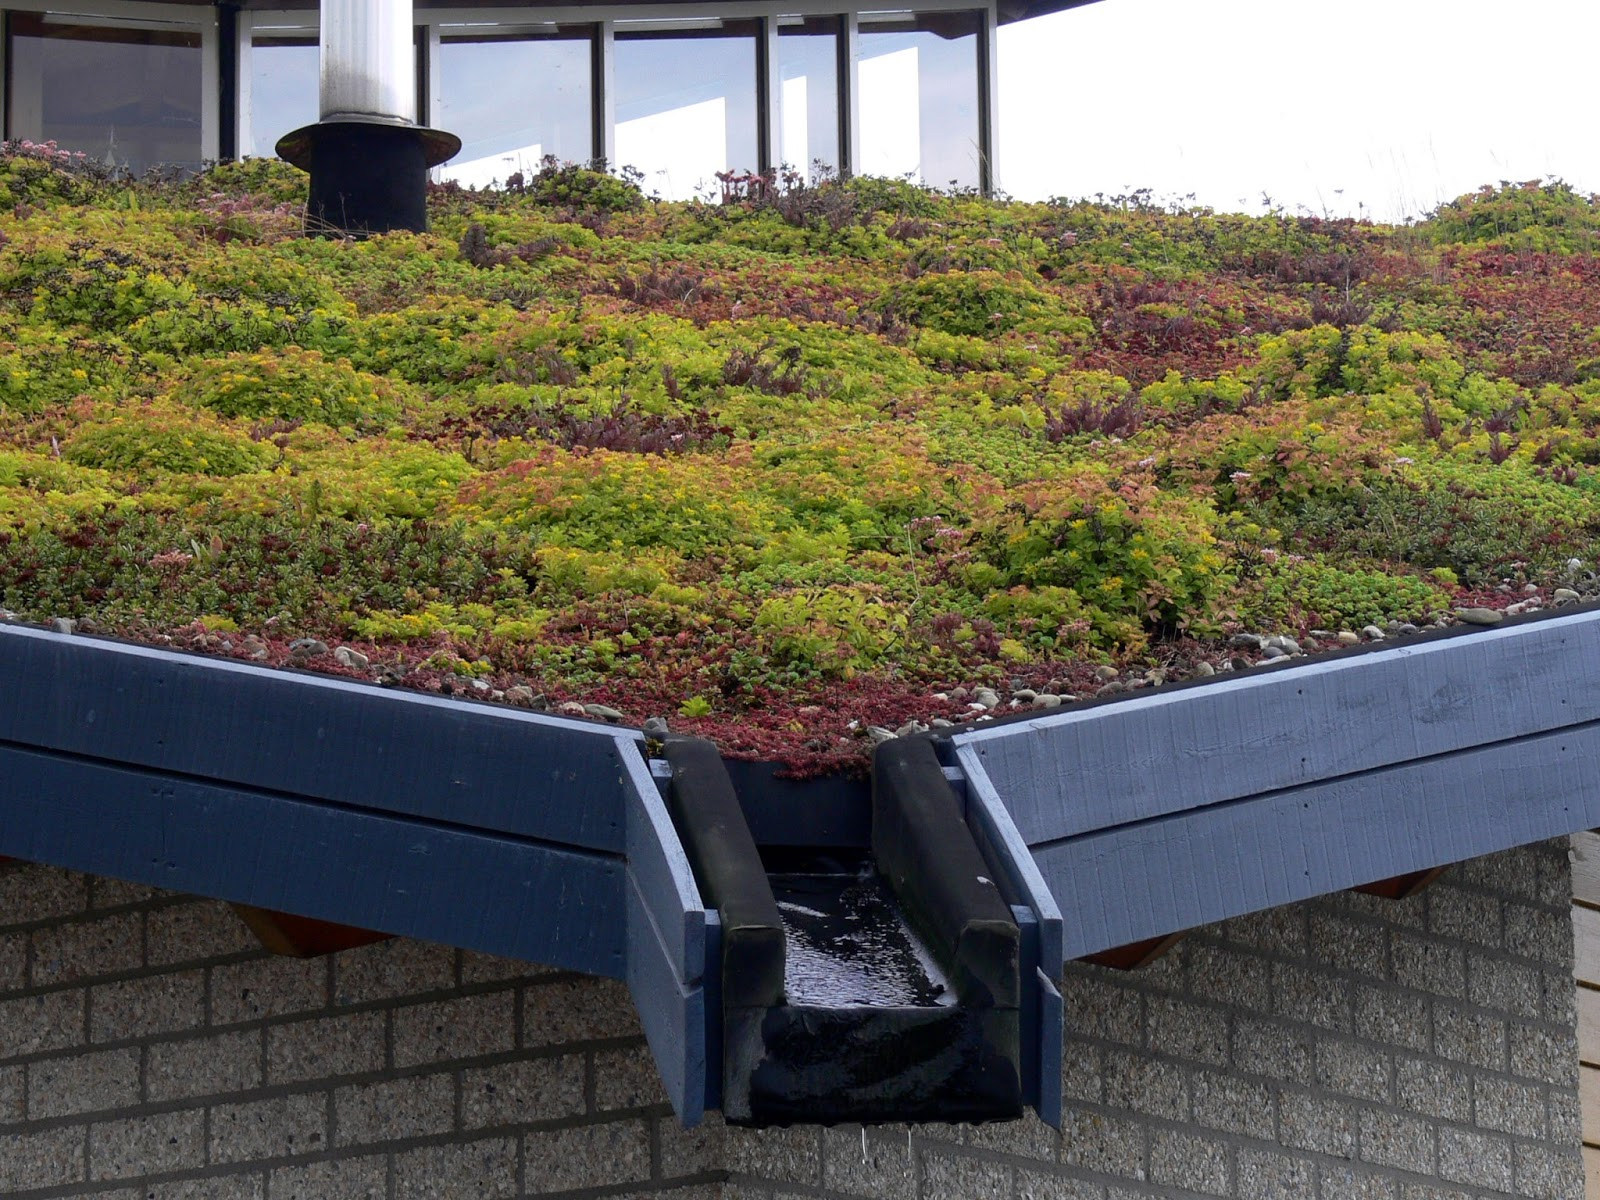 boston green blog guest post the benefits of living roofs for cities. Black Bedroom Furniture Sets. Home Design Ideas